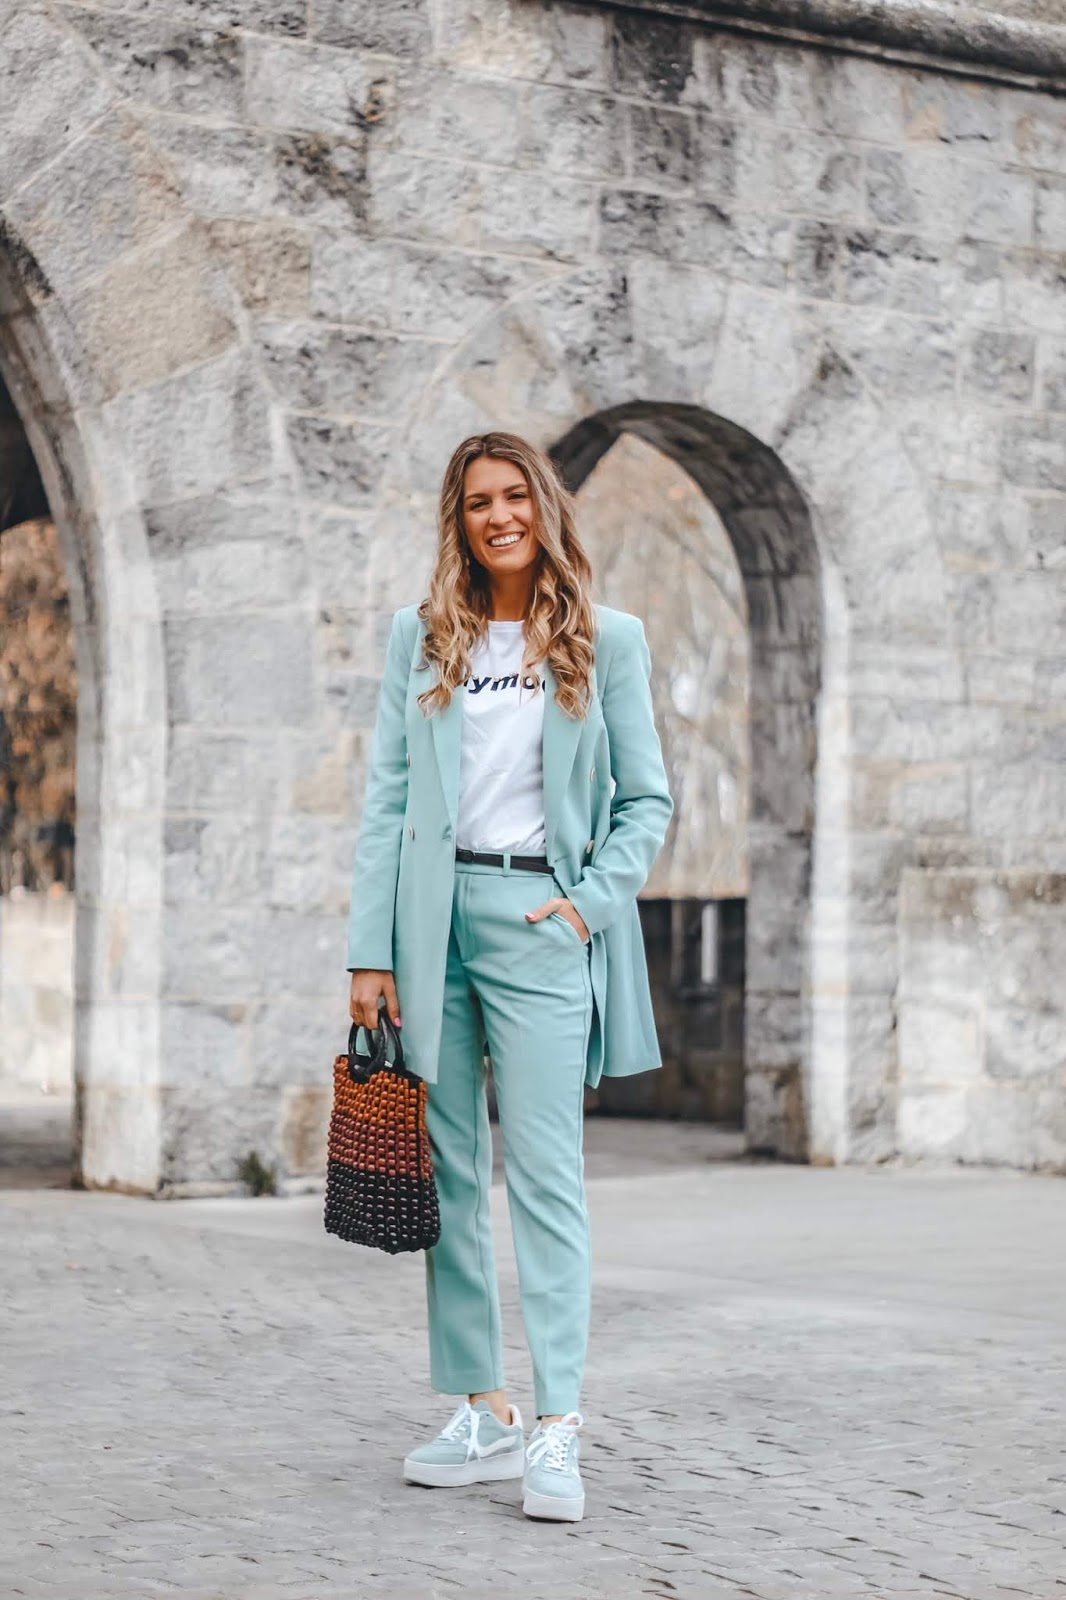 tendencia trajes mujer 2019